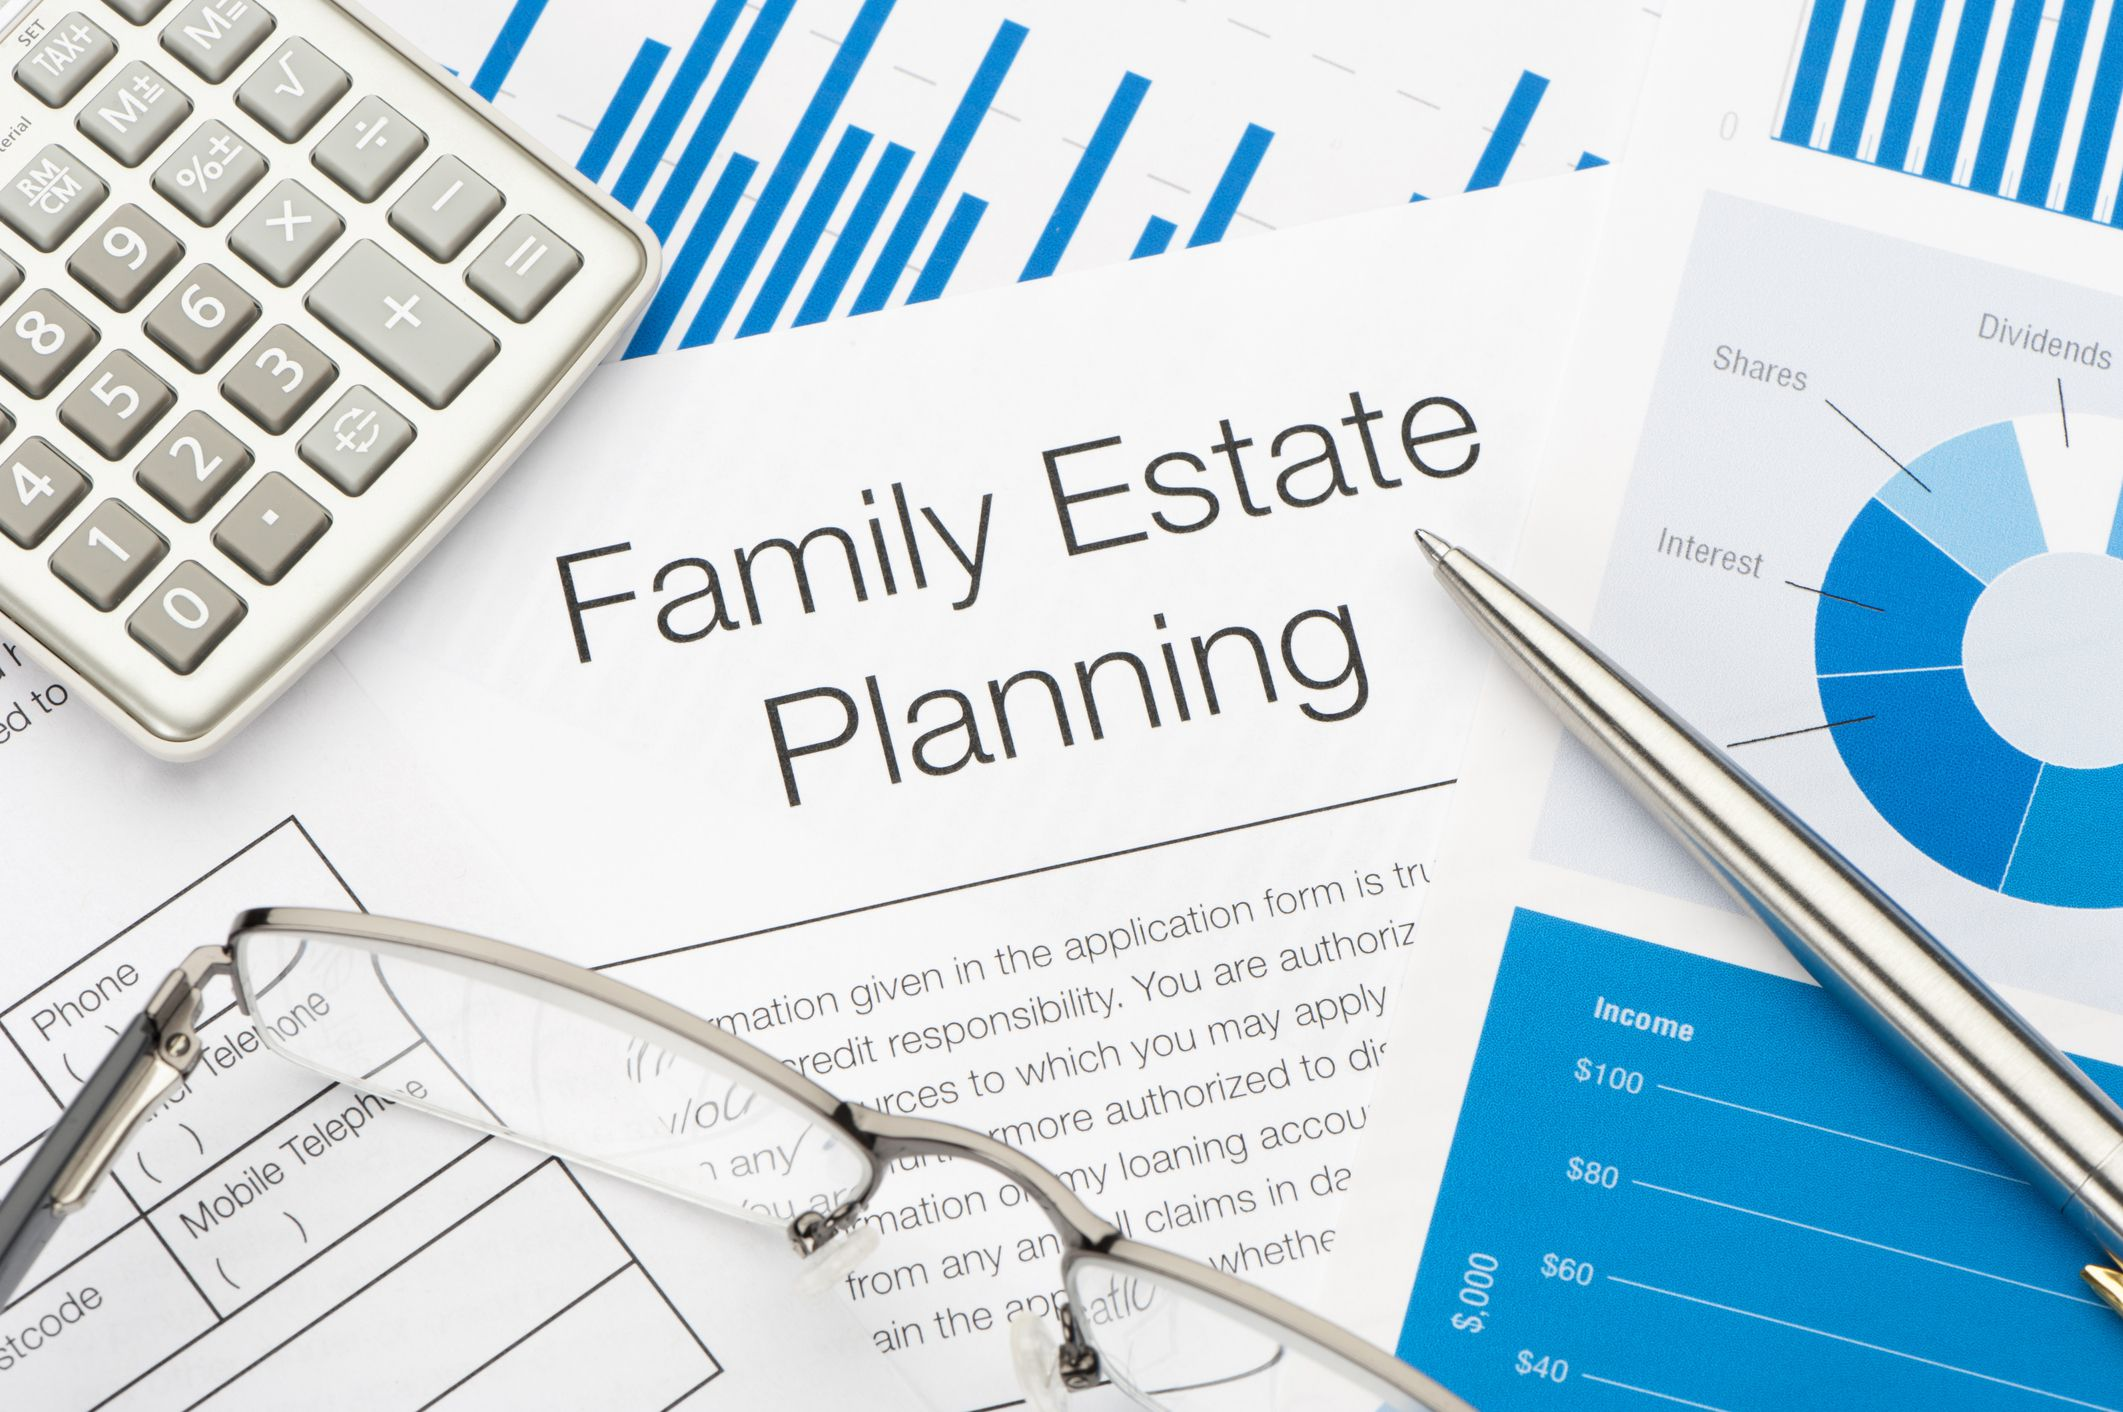 Now's the Time to Make Your Estate Planning List and Check It Twice